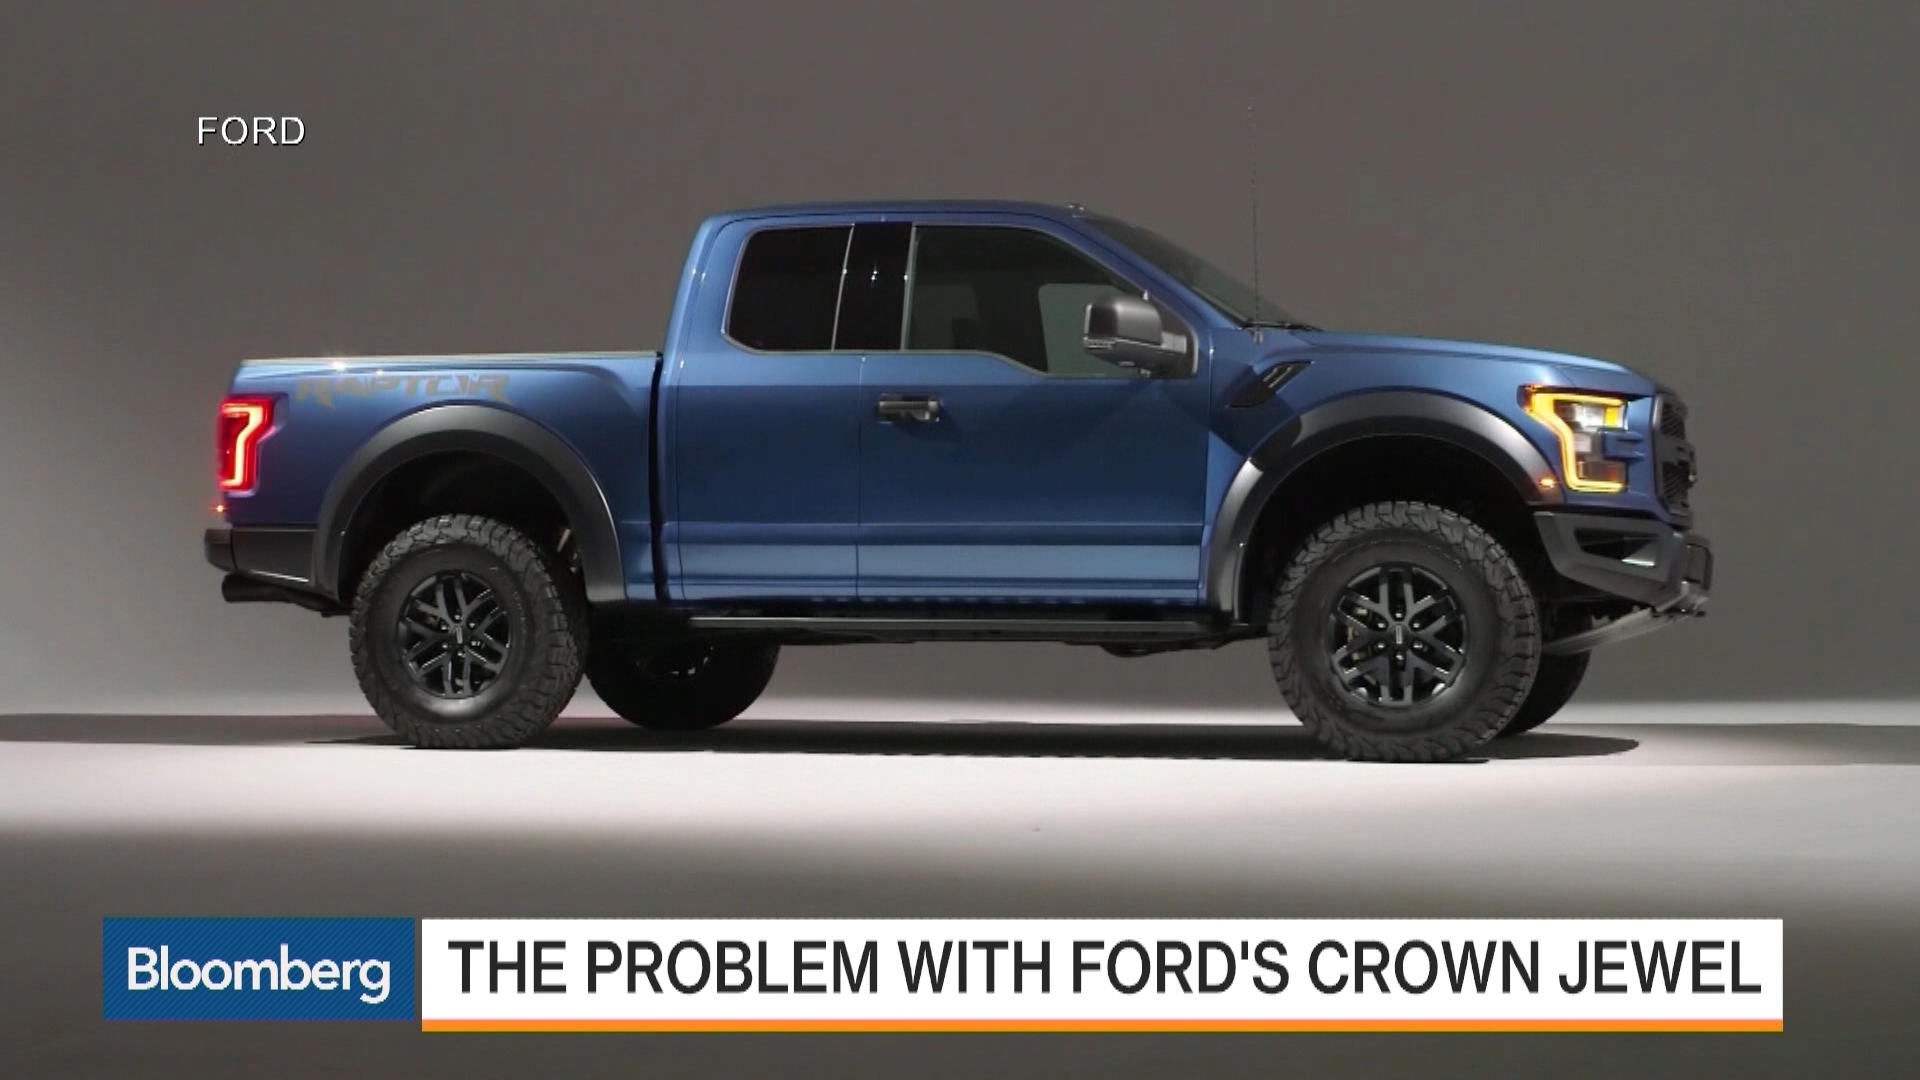 f 150 problem what 39 s wrong with ford 39 s crown jewel bloomberg. Black Bedroom Furniture Sets. Home Design Ideas